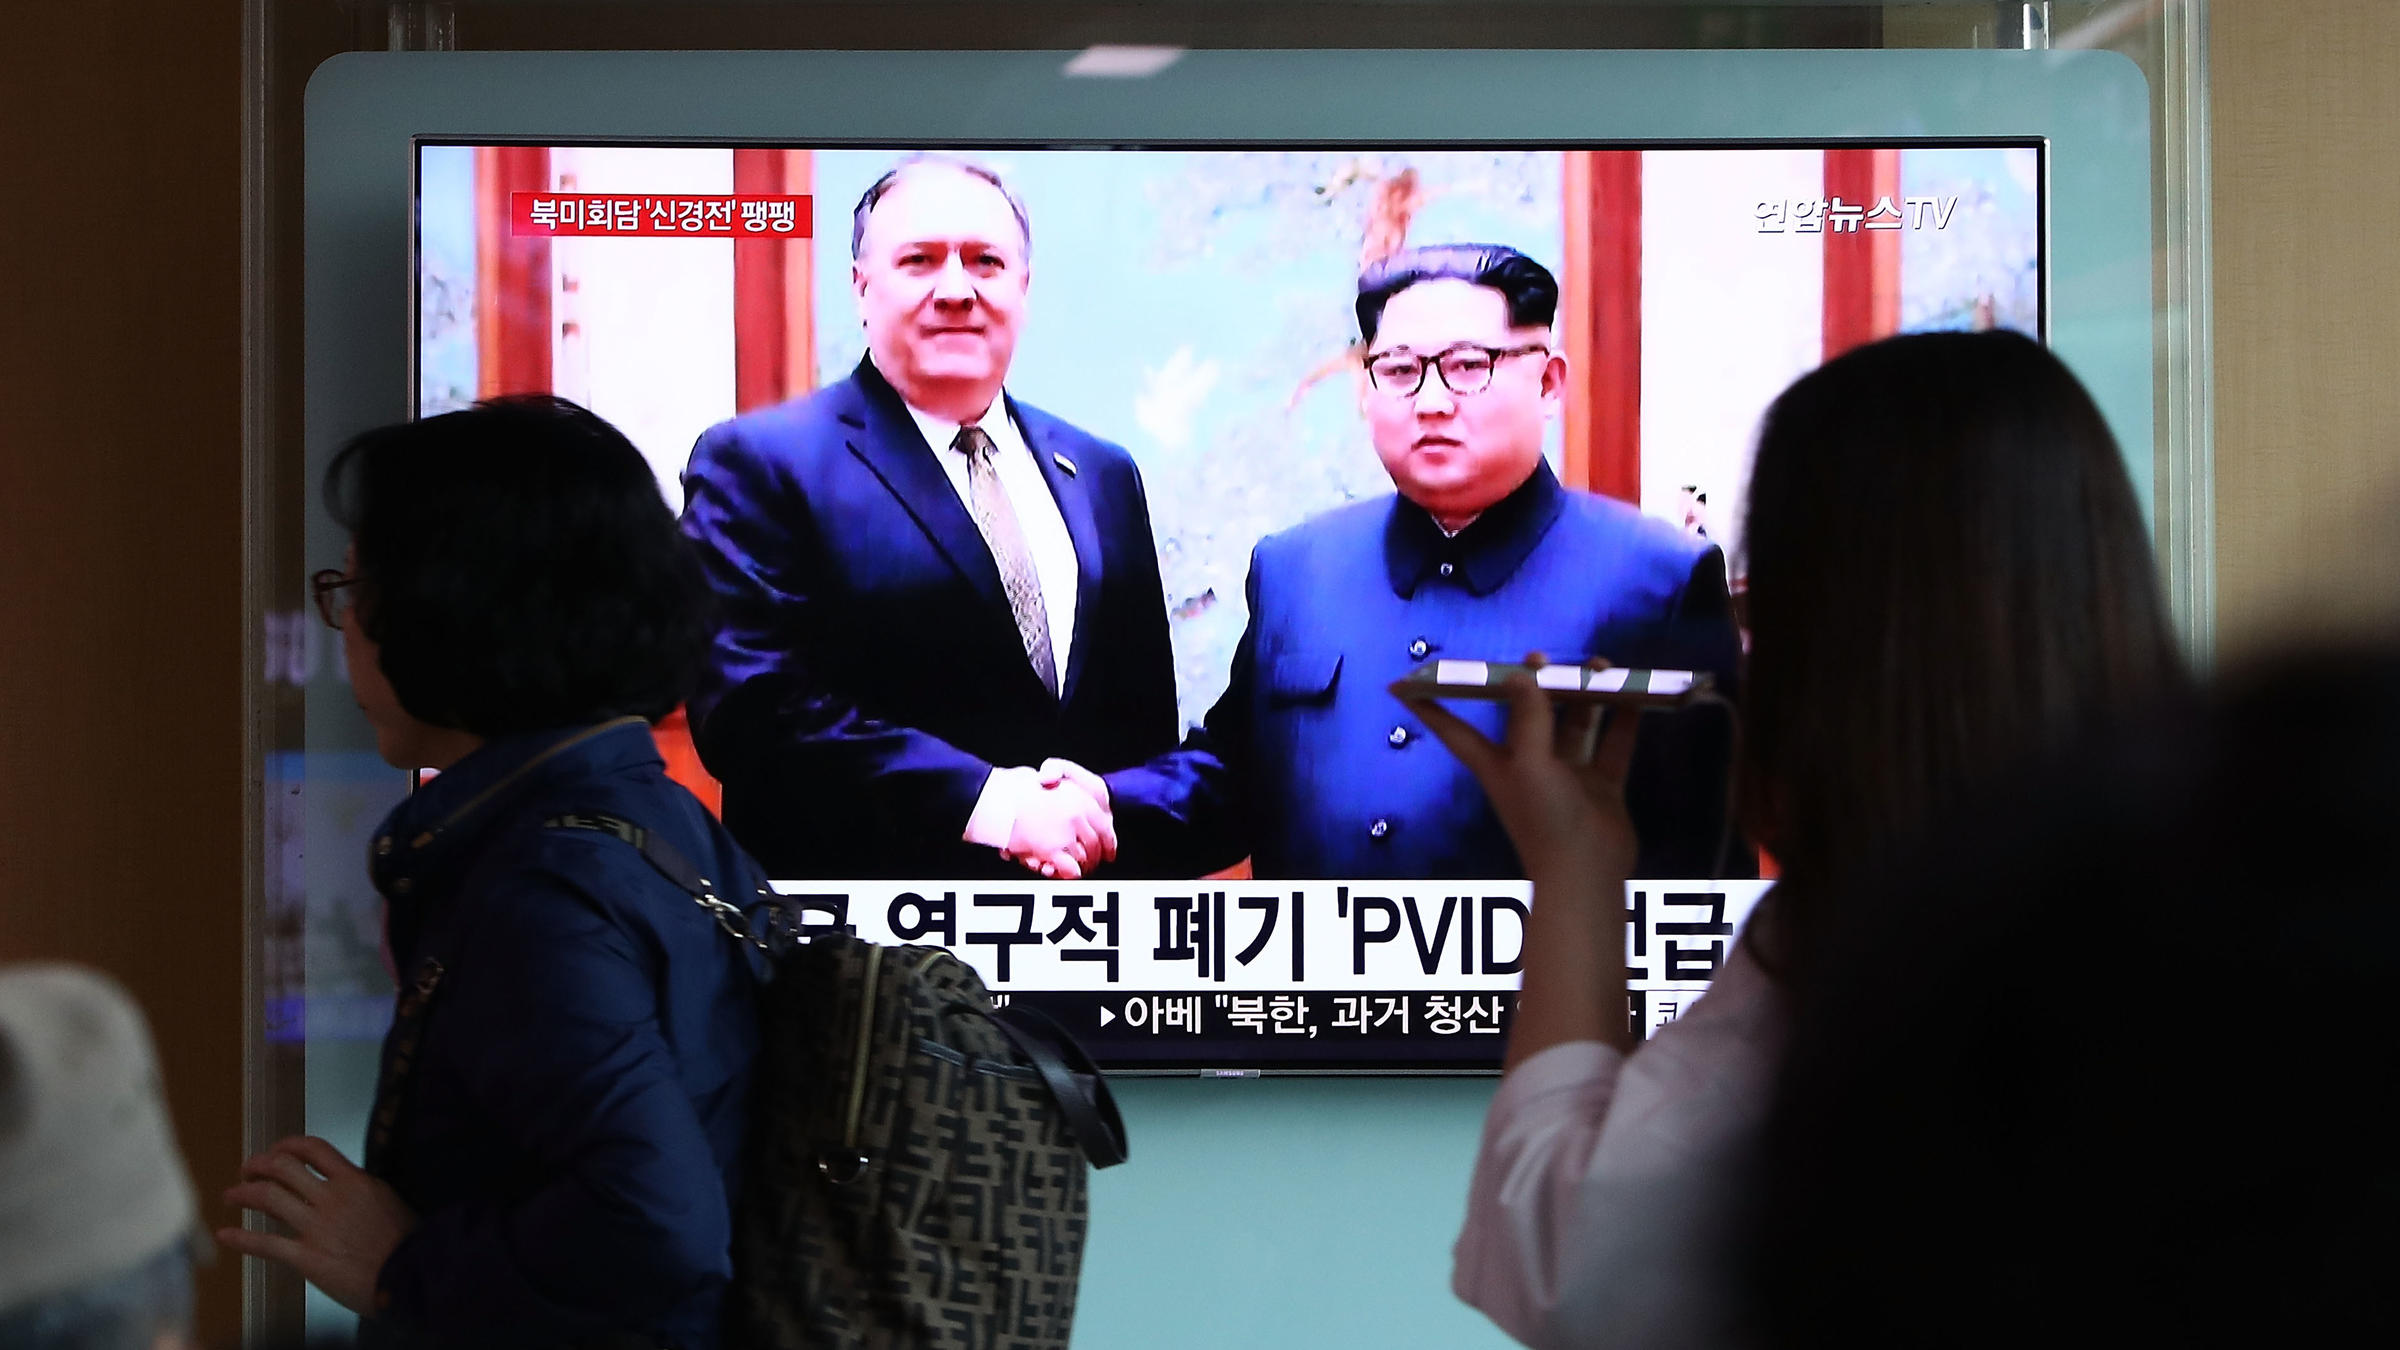 North Korea to release three United States citizens